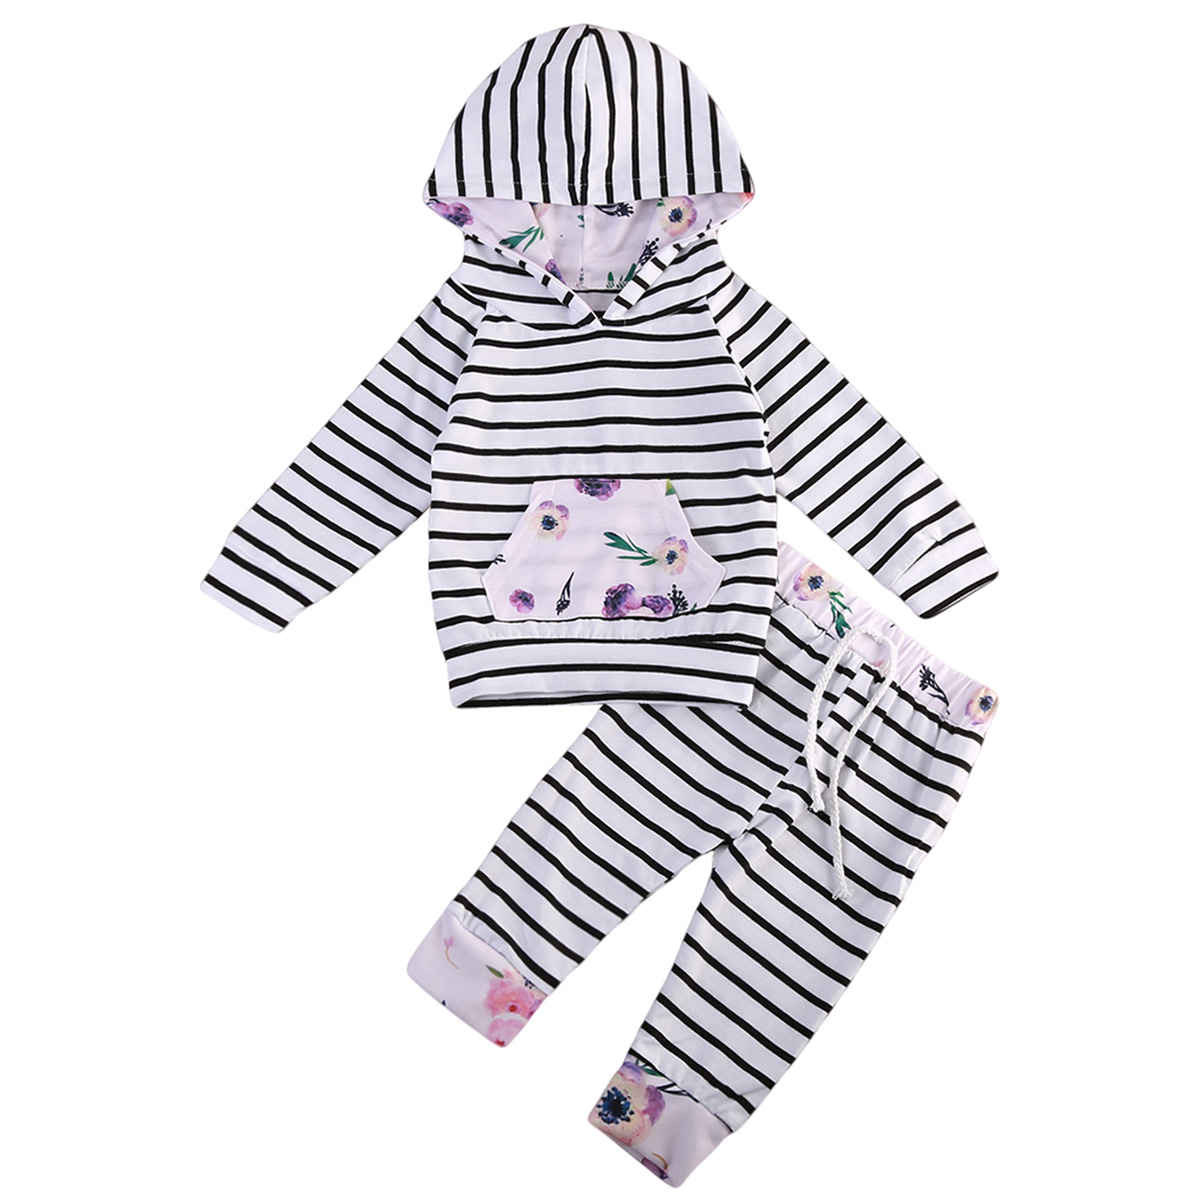 Newborn Baby Boys Girls Long Sleeve Striped Floral Hooded Tops Long Pants Outfits Set Clothes